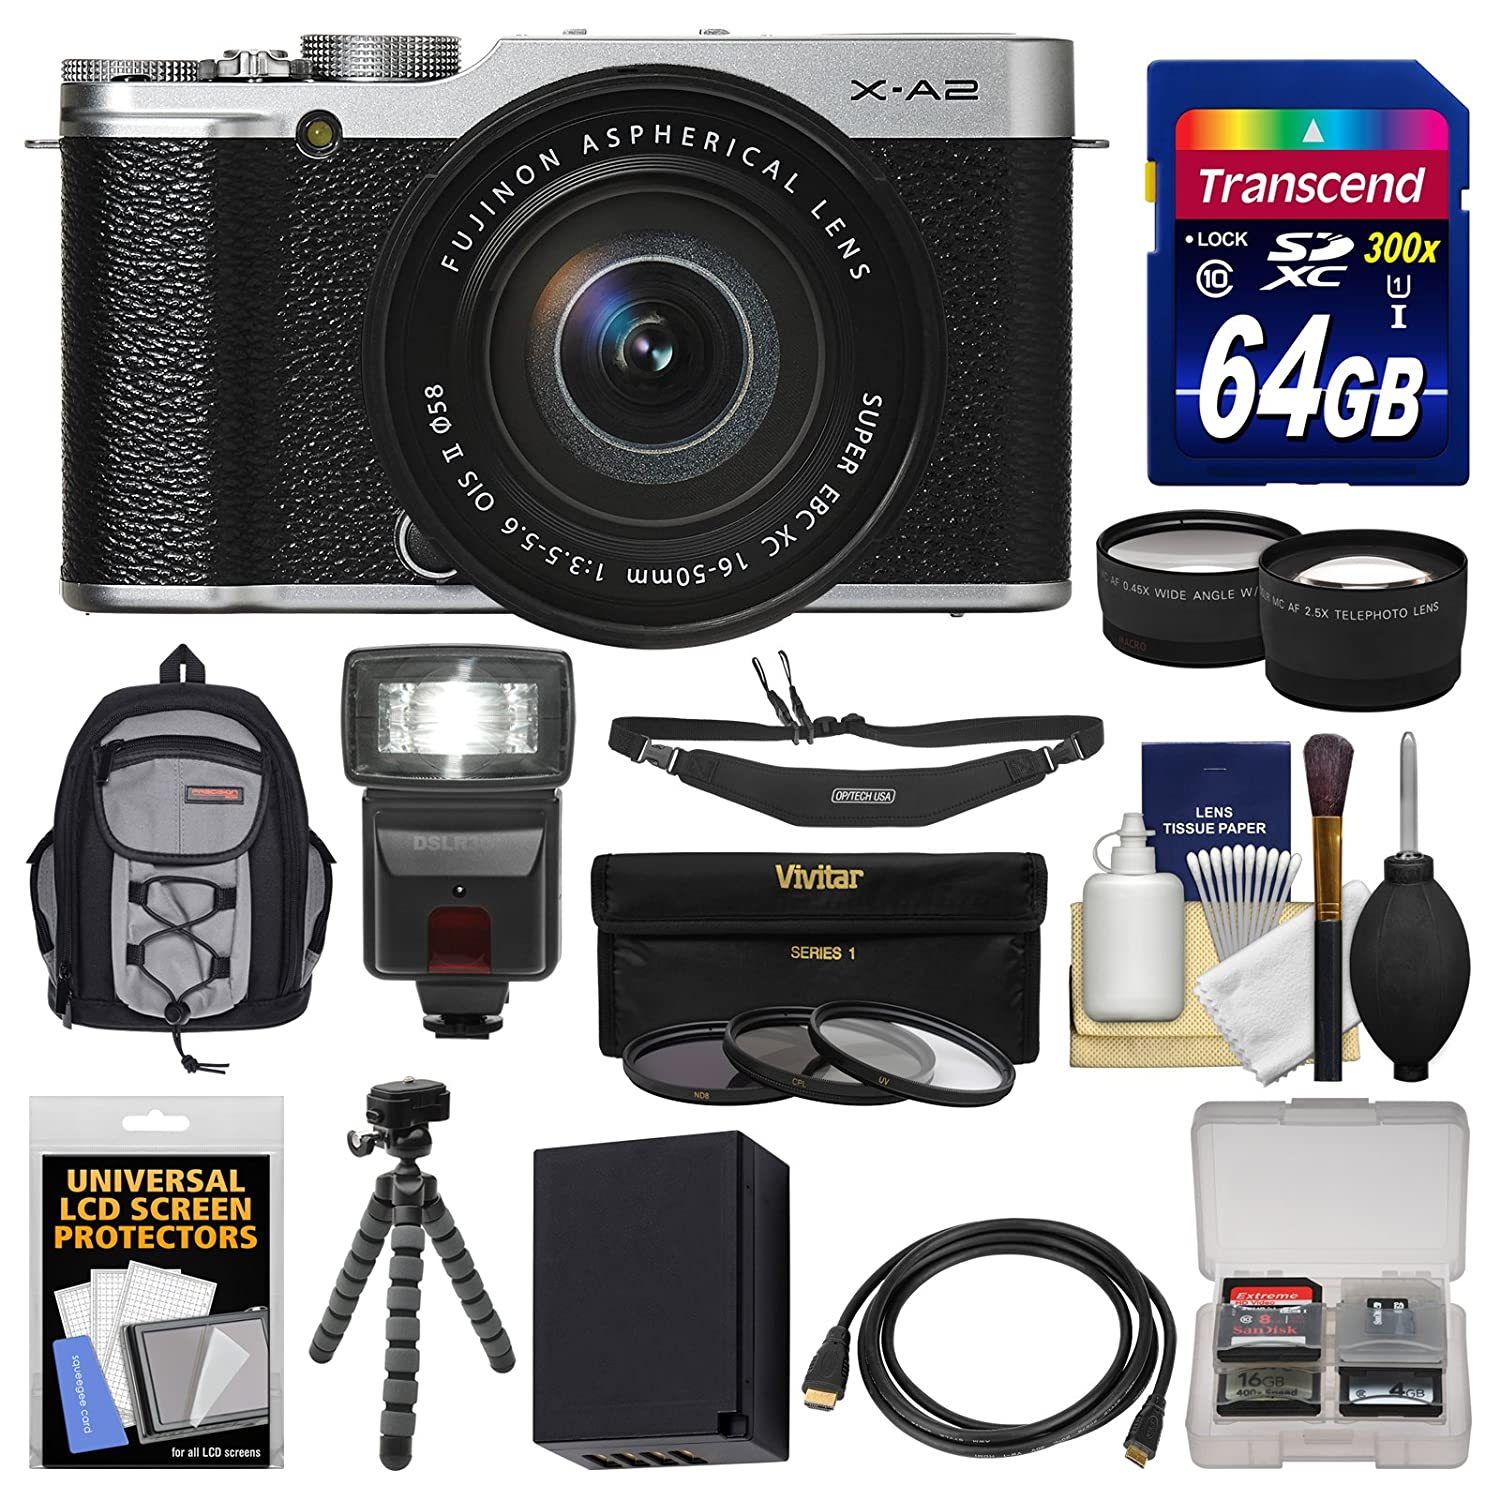 Fujifilm X-A2 Wi-Fi Digital Camera & 16-50mm XC Lens (Silver) with 64GB Card + Case + Flash + Battery + Tripod + Tele/Wide Lens Kit